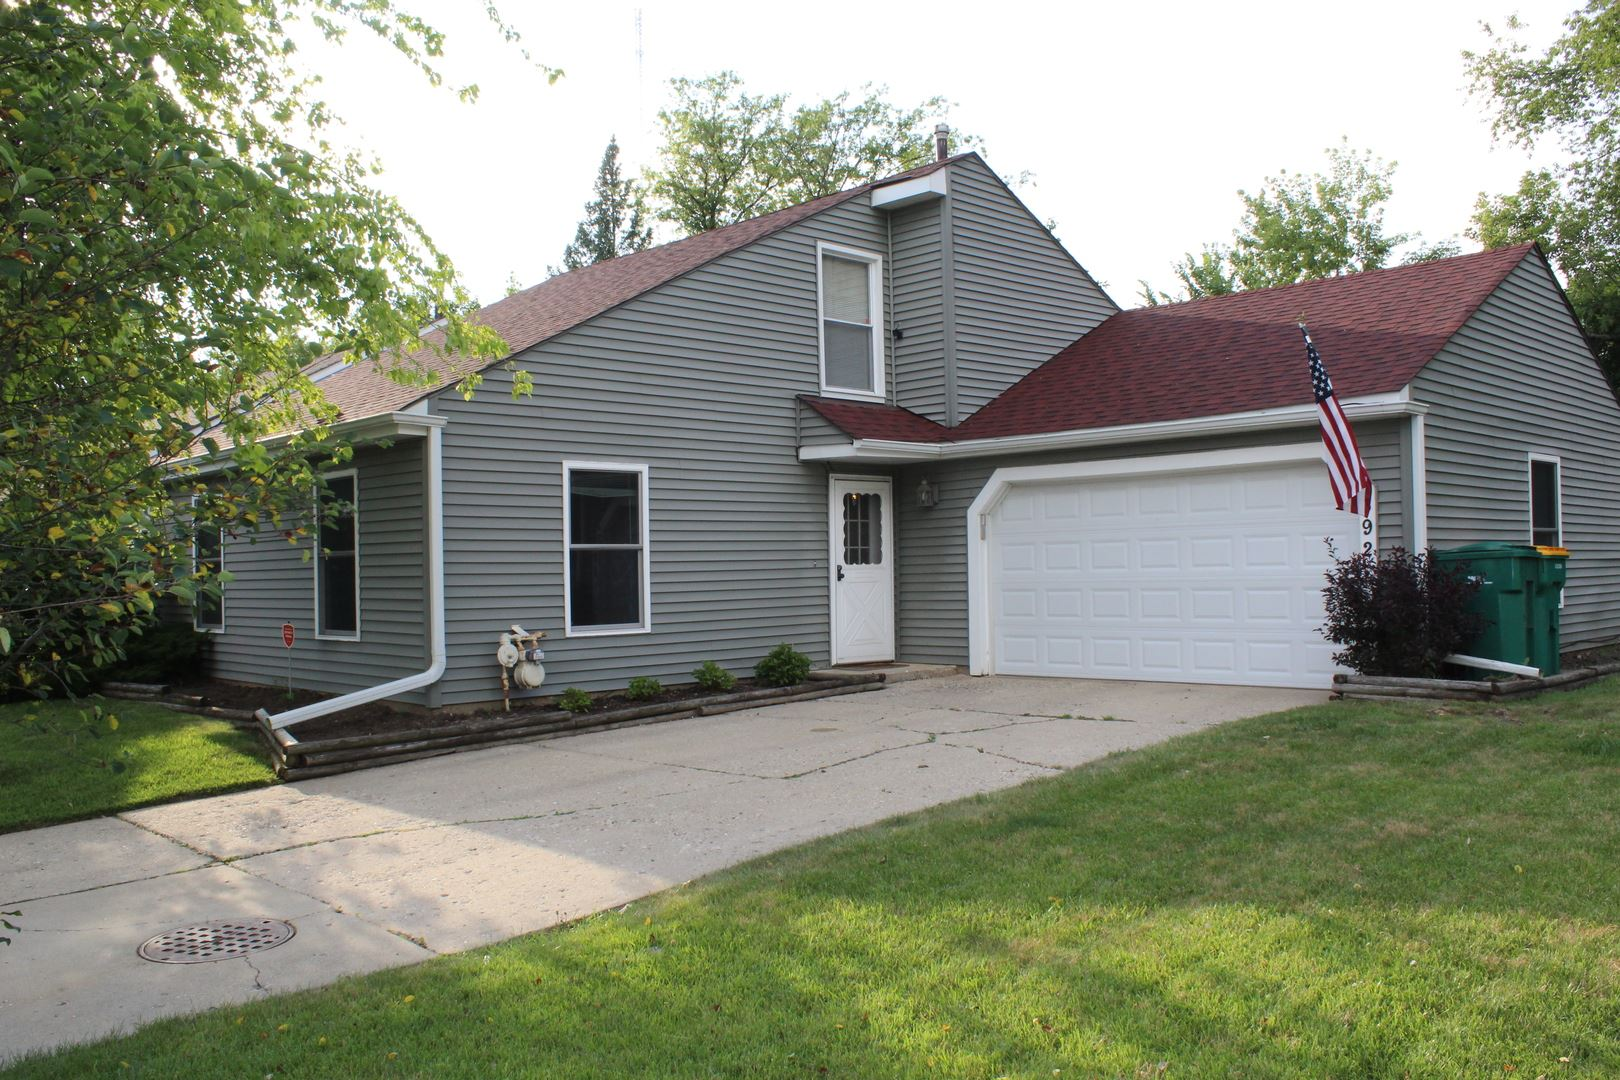 392 SAUK Court, Round Lake Beach, IL 60073 - #: 10774955